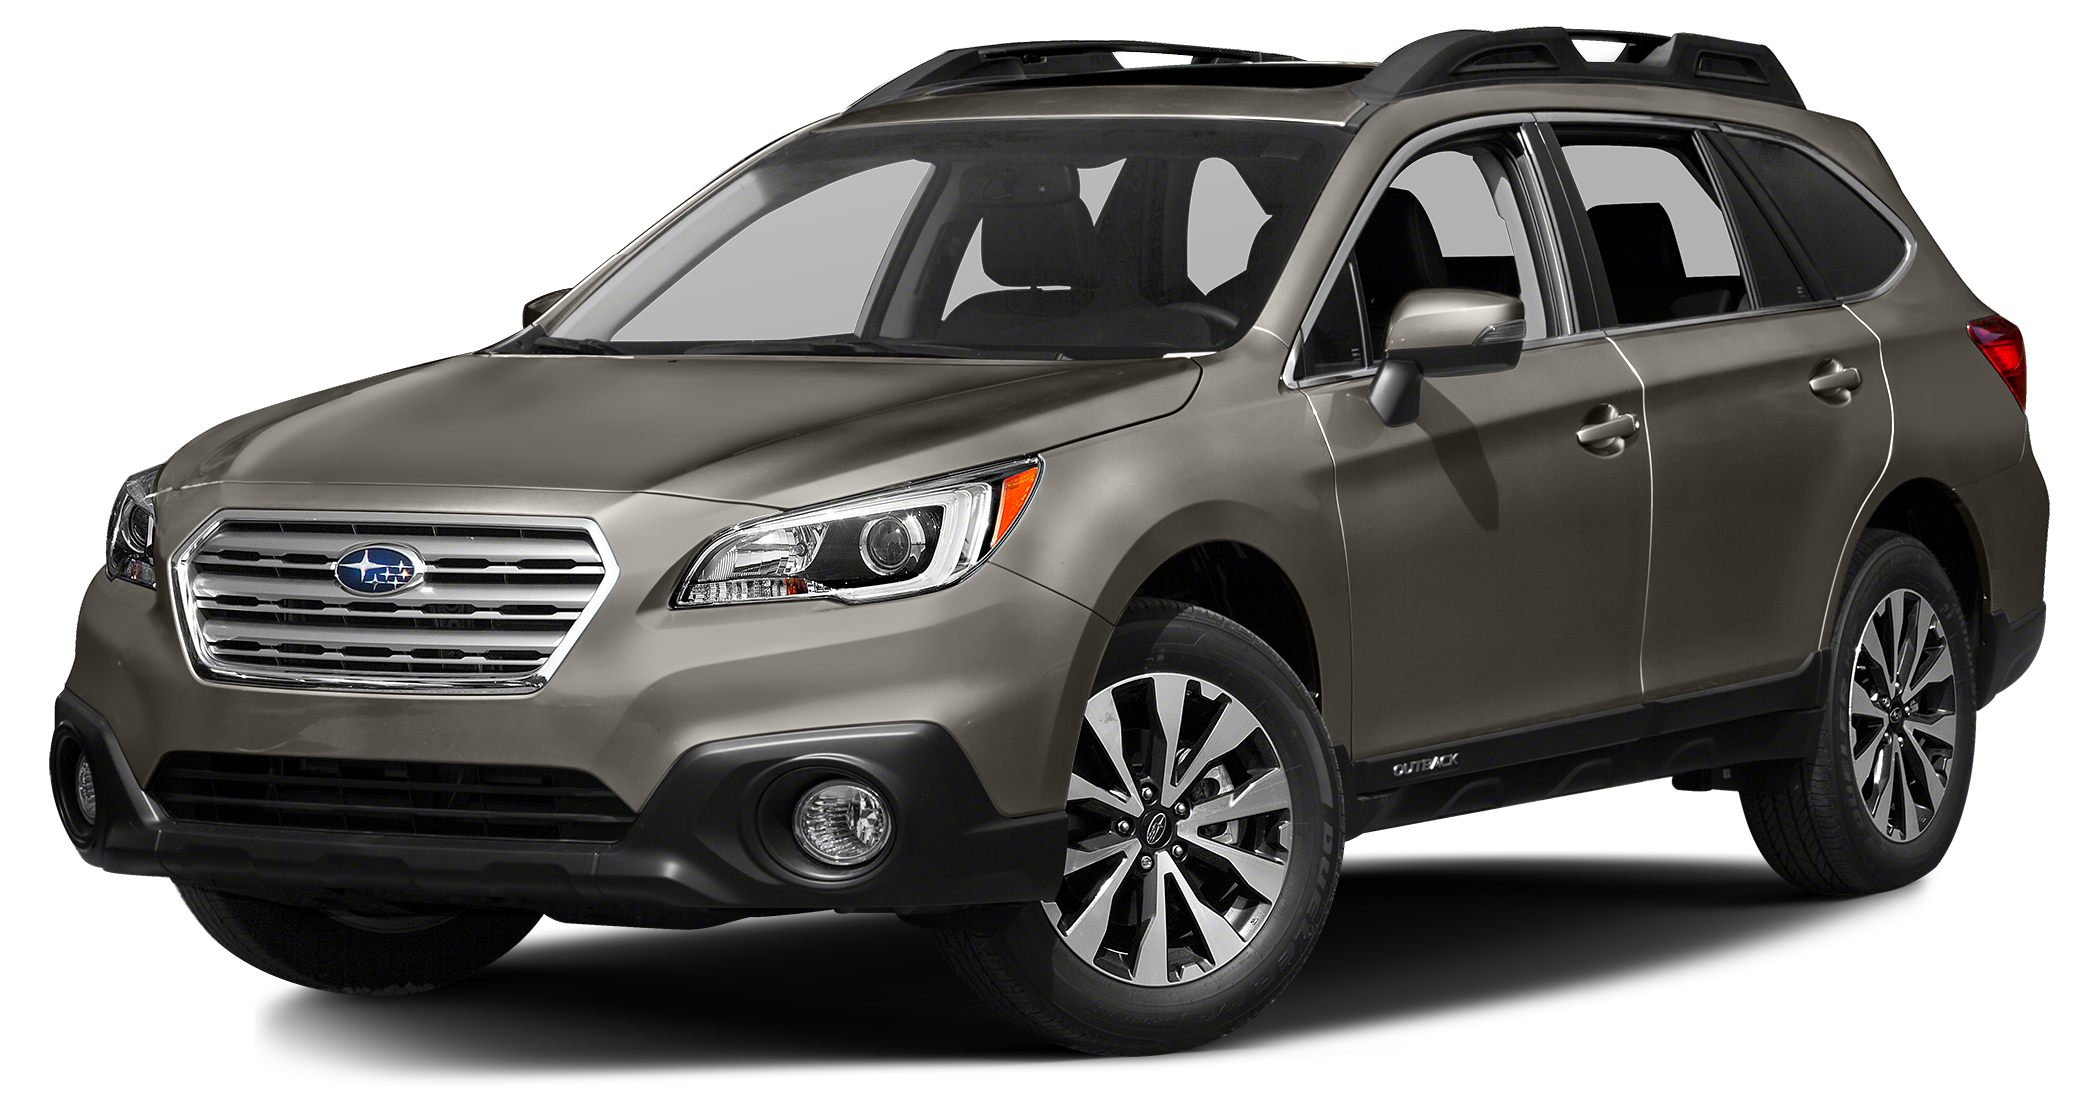 2015 Subaru Outback 25i Premium 2015 Subaru Outback 25i in Tungsten Wet-Weather Traction contro